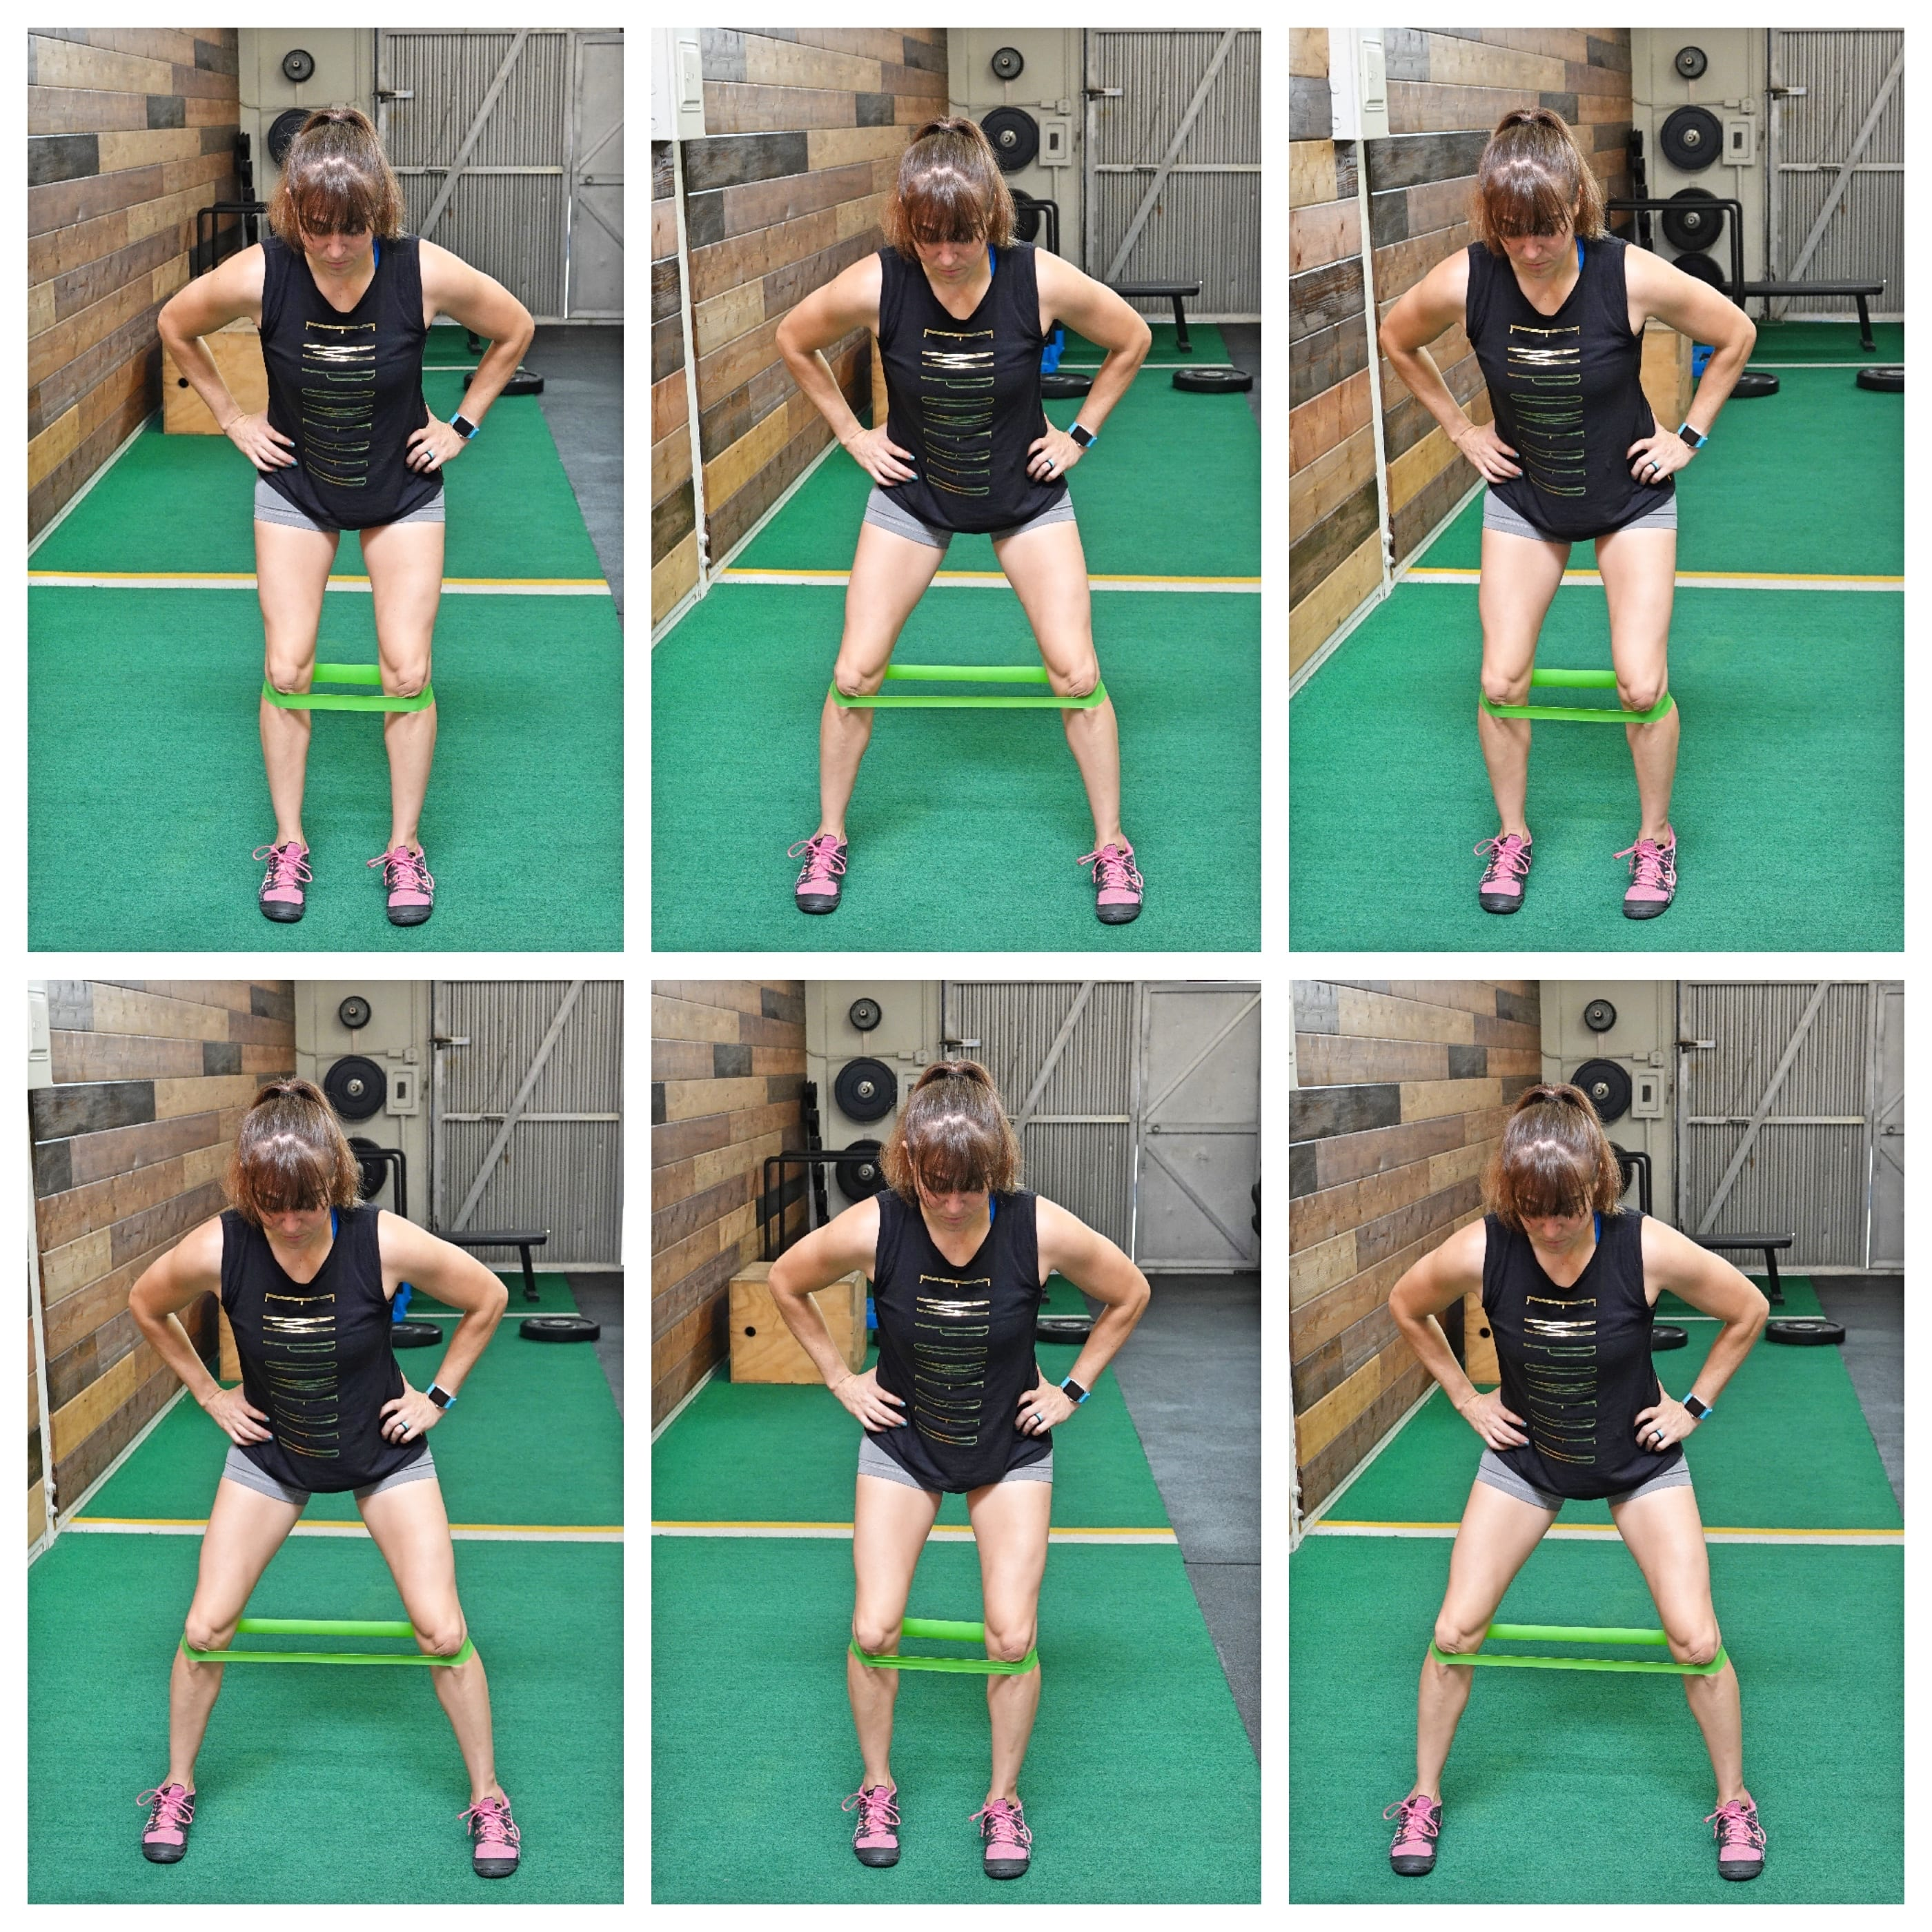 6 Abduction Exercises To Strengthen Your Glute Medius